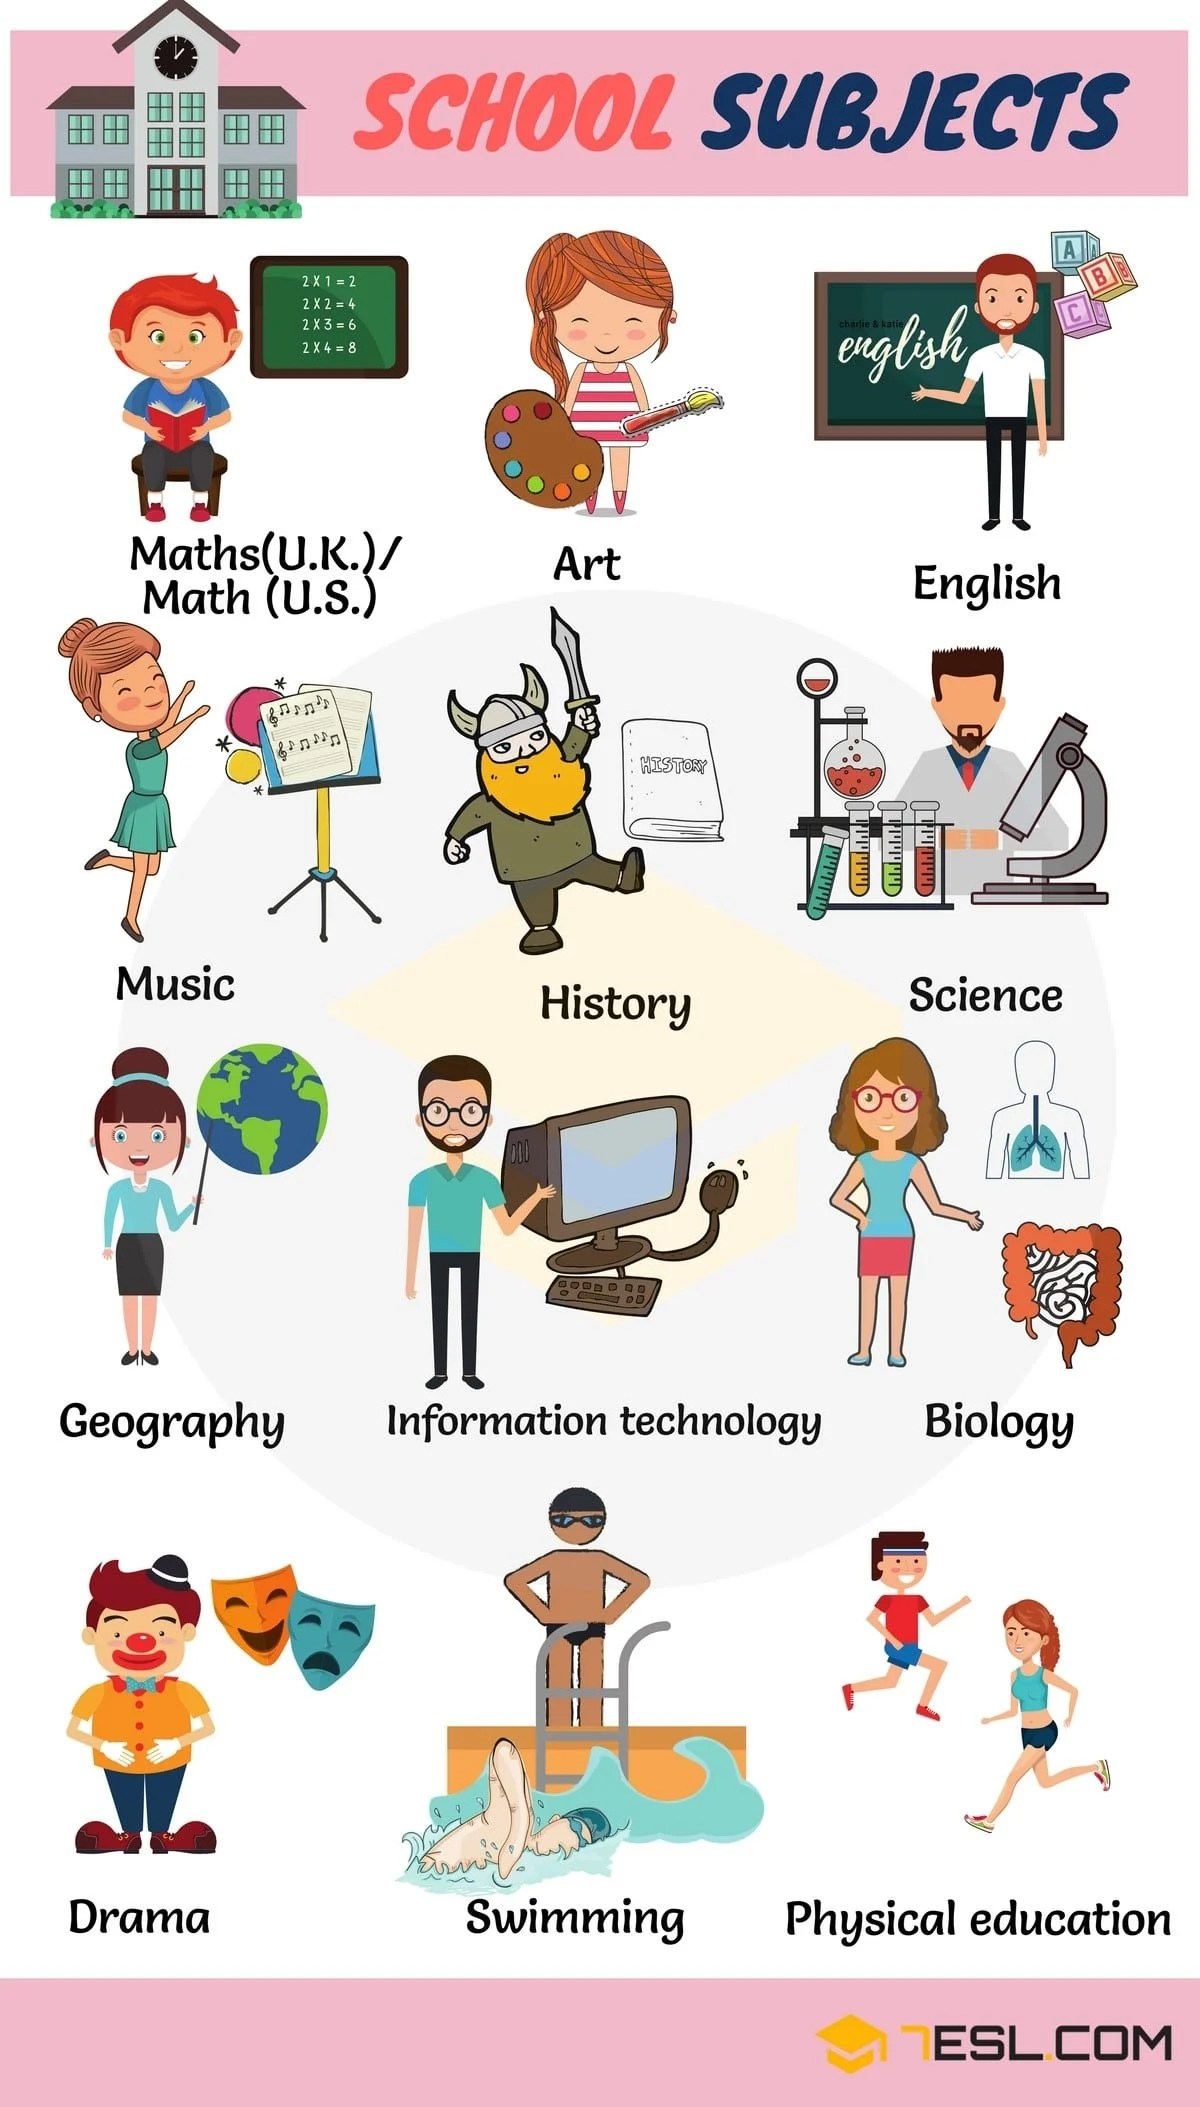 oxford biology dictionary subject words